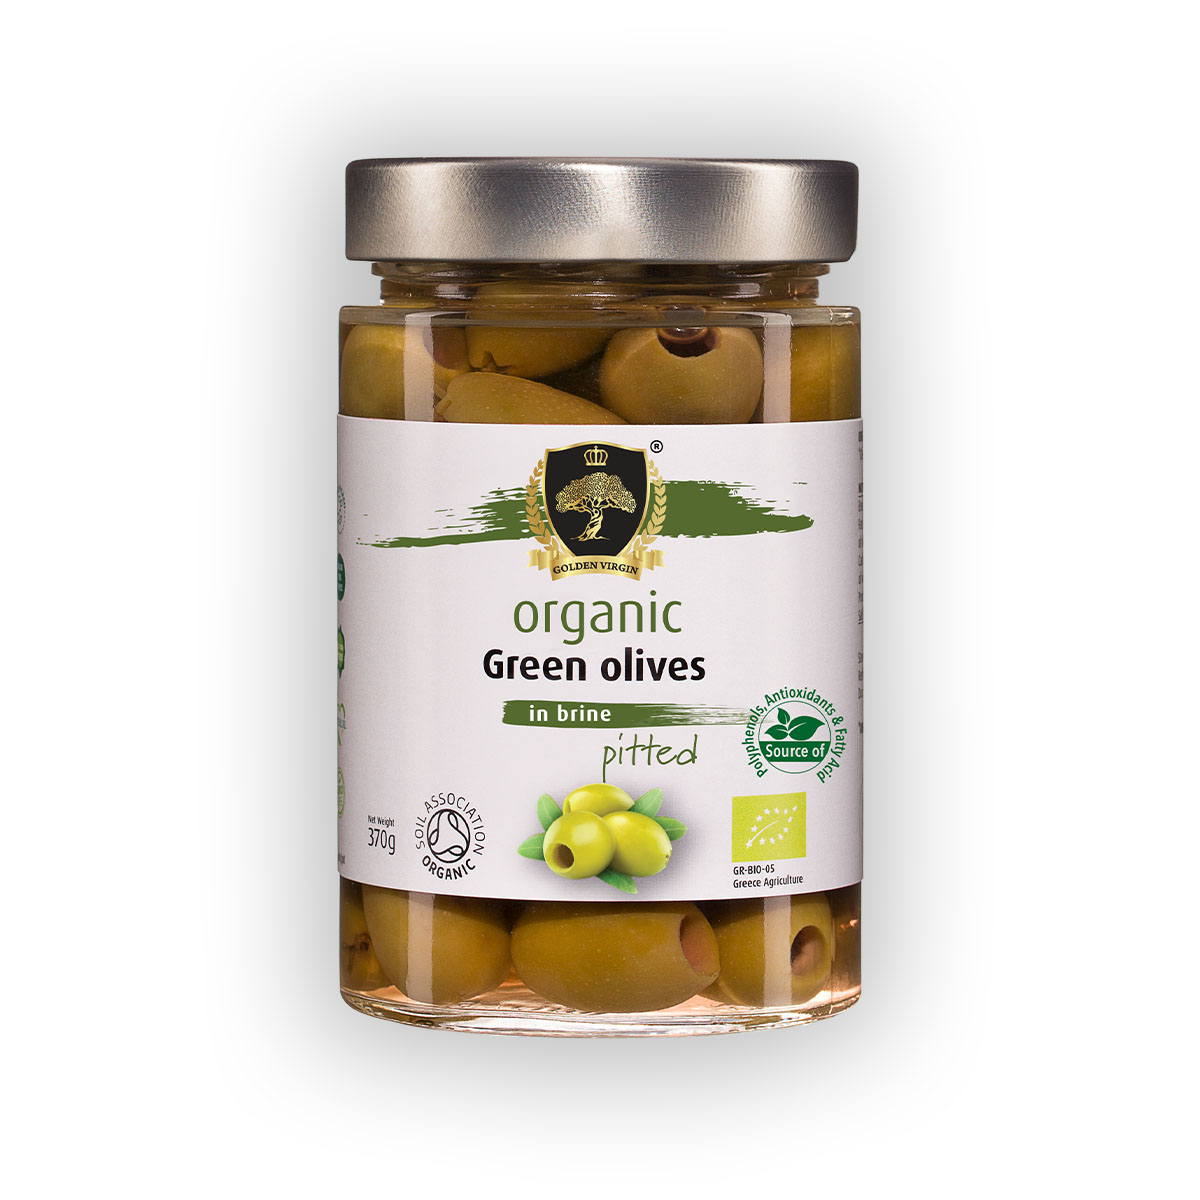 Organic Green Olives in brine - Pitted - Golden Virgin Foods